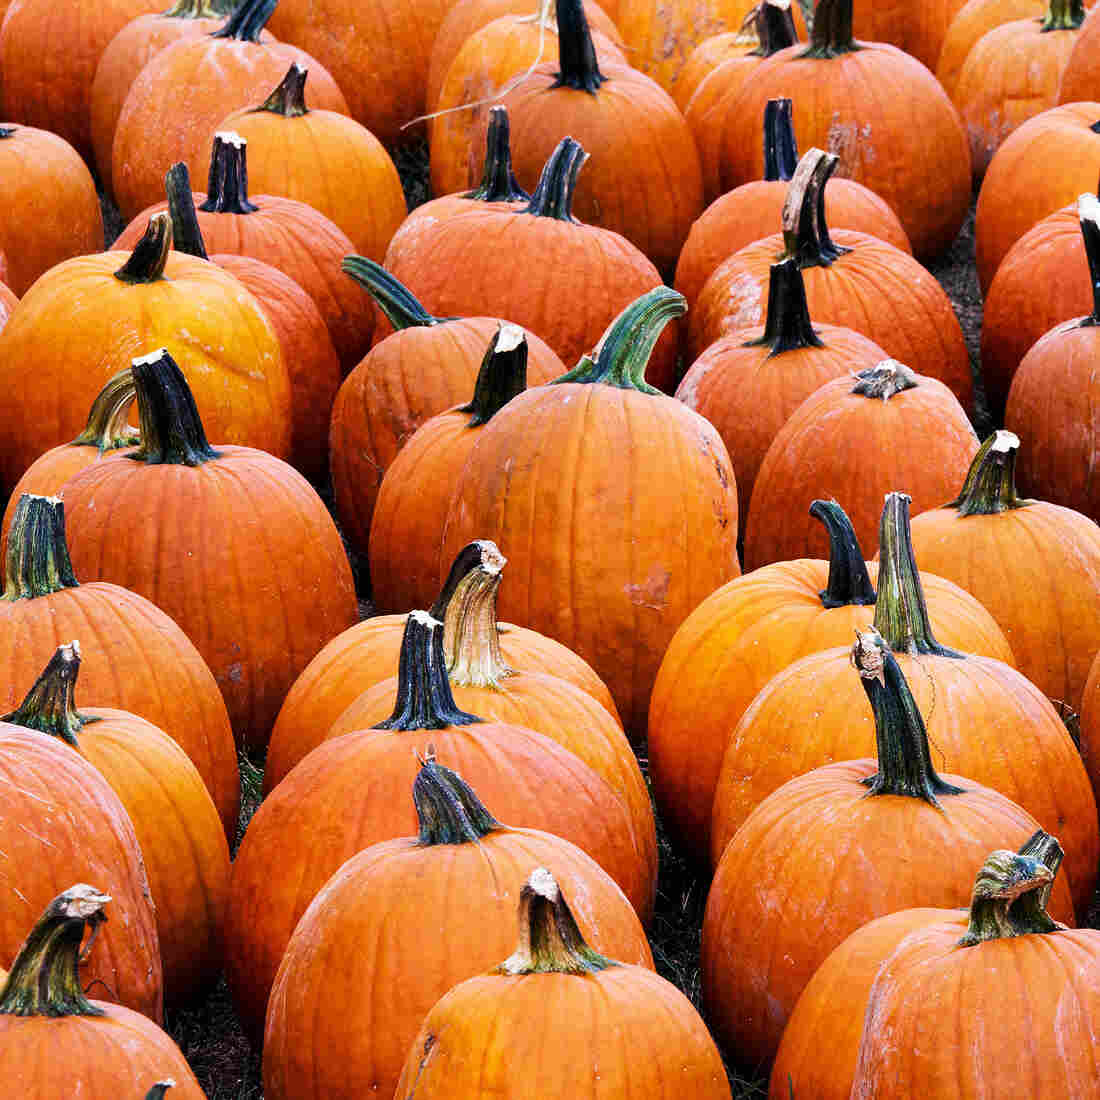 Why Americans Go Crazy For Pumpkin And Pumpkin-Flavored Stuff